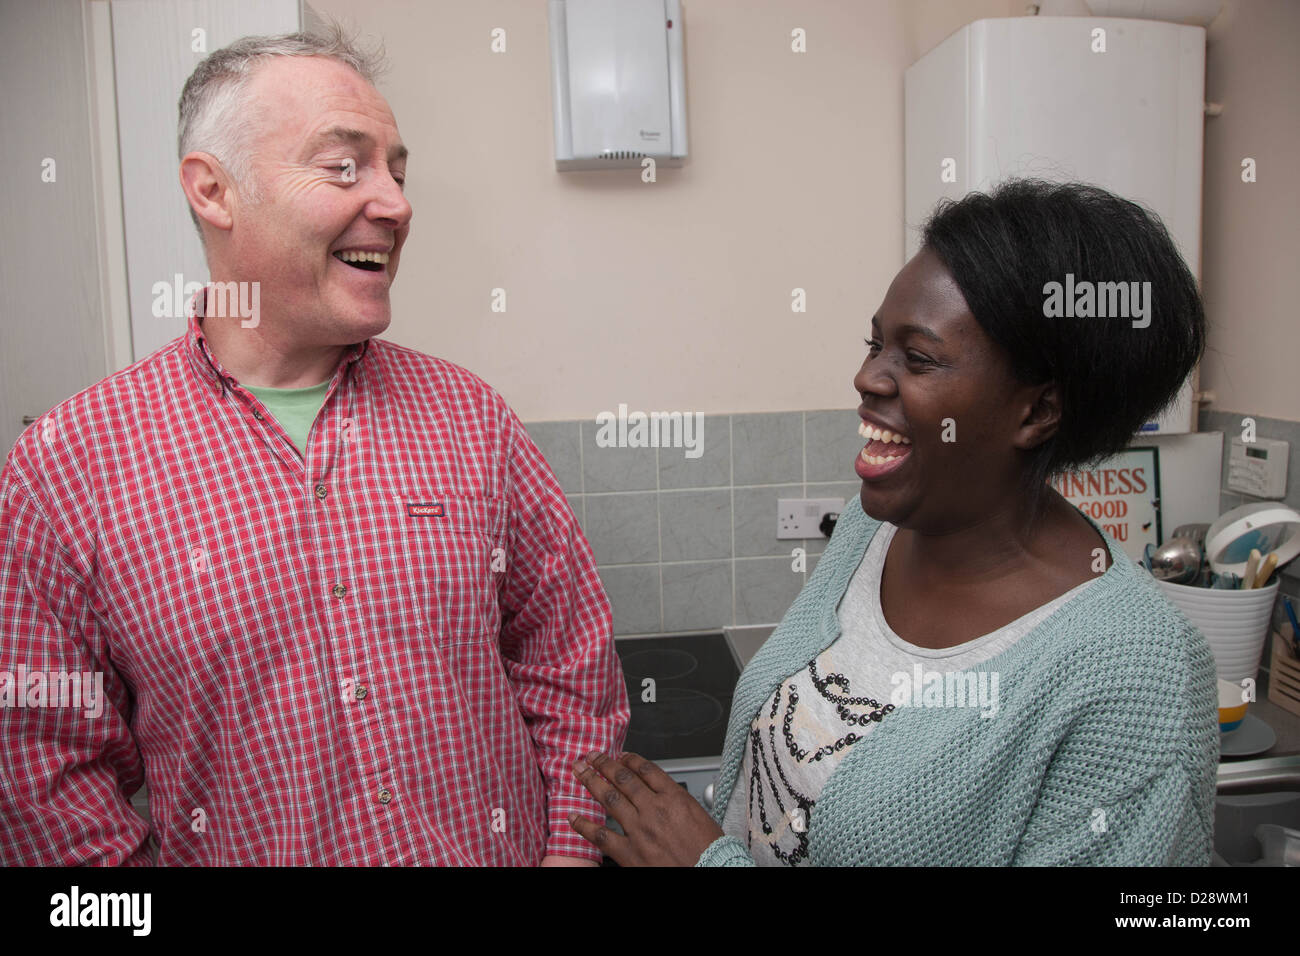 Couple having a joke in a kitchen. - Stock Image